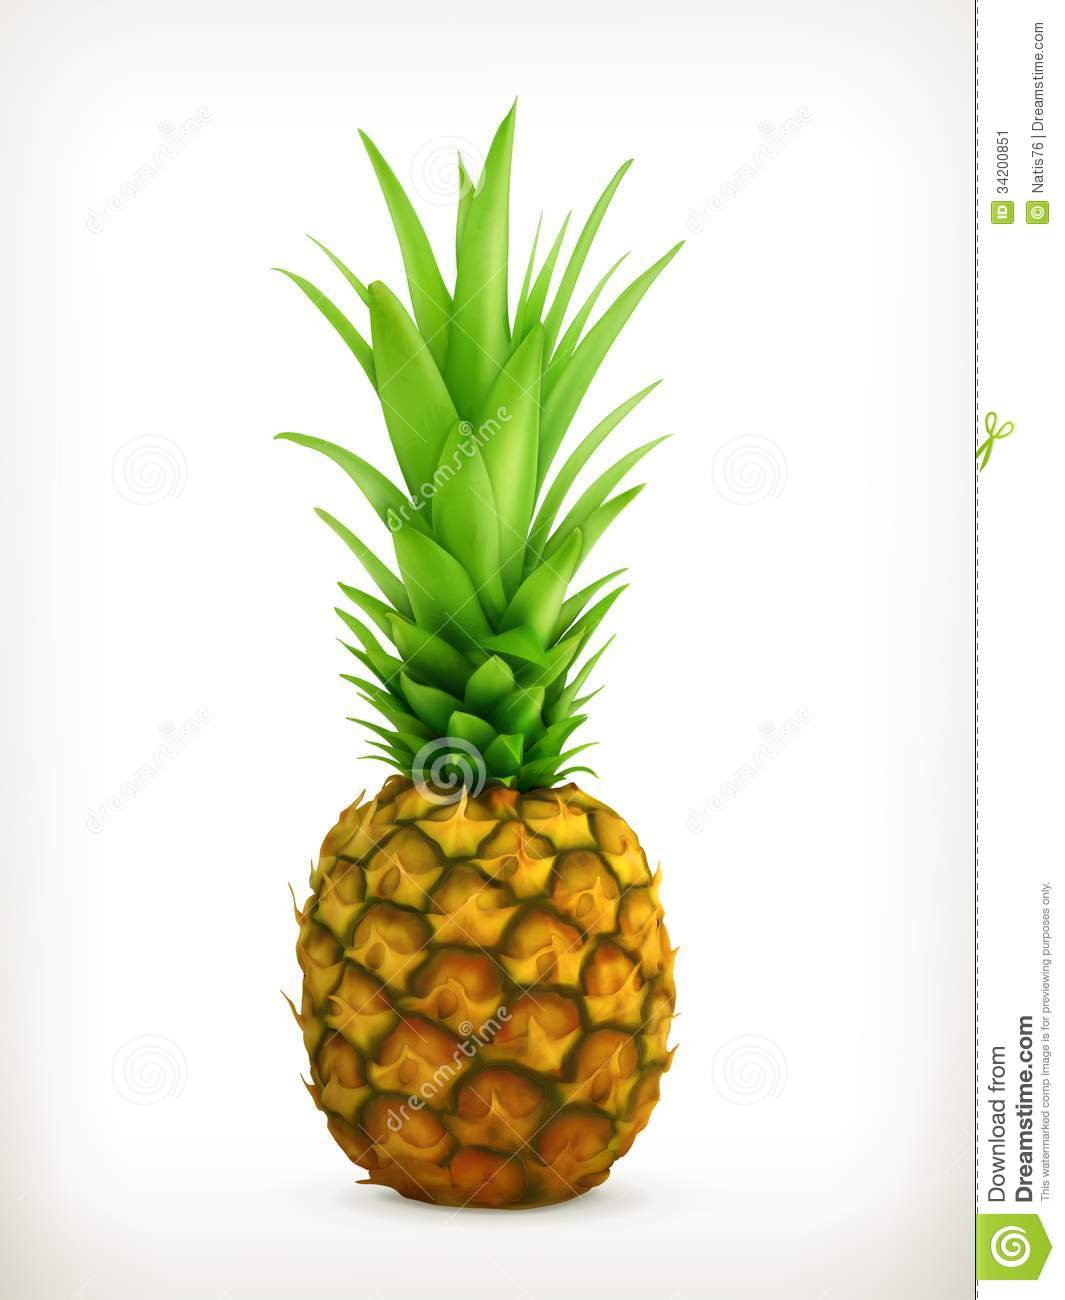 Pineapple Stock Image - Image: 34200851